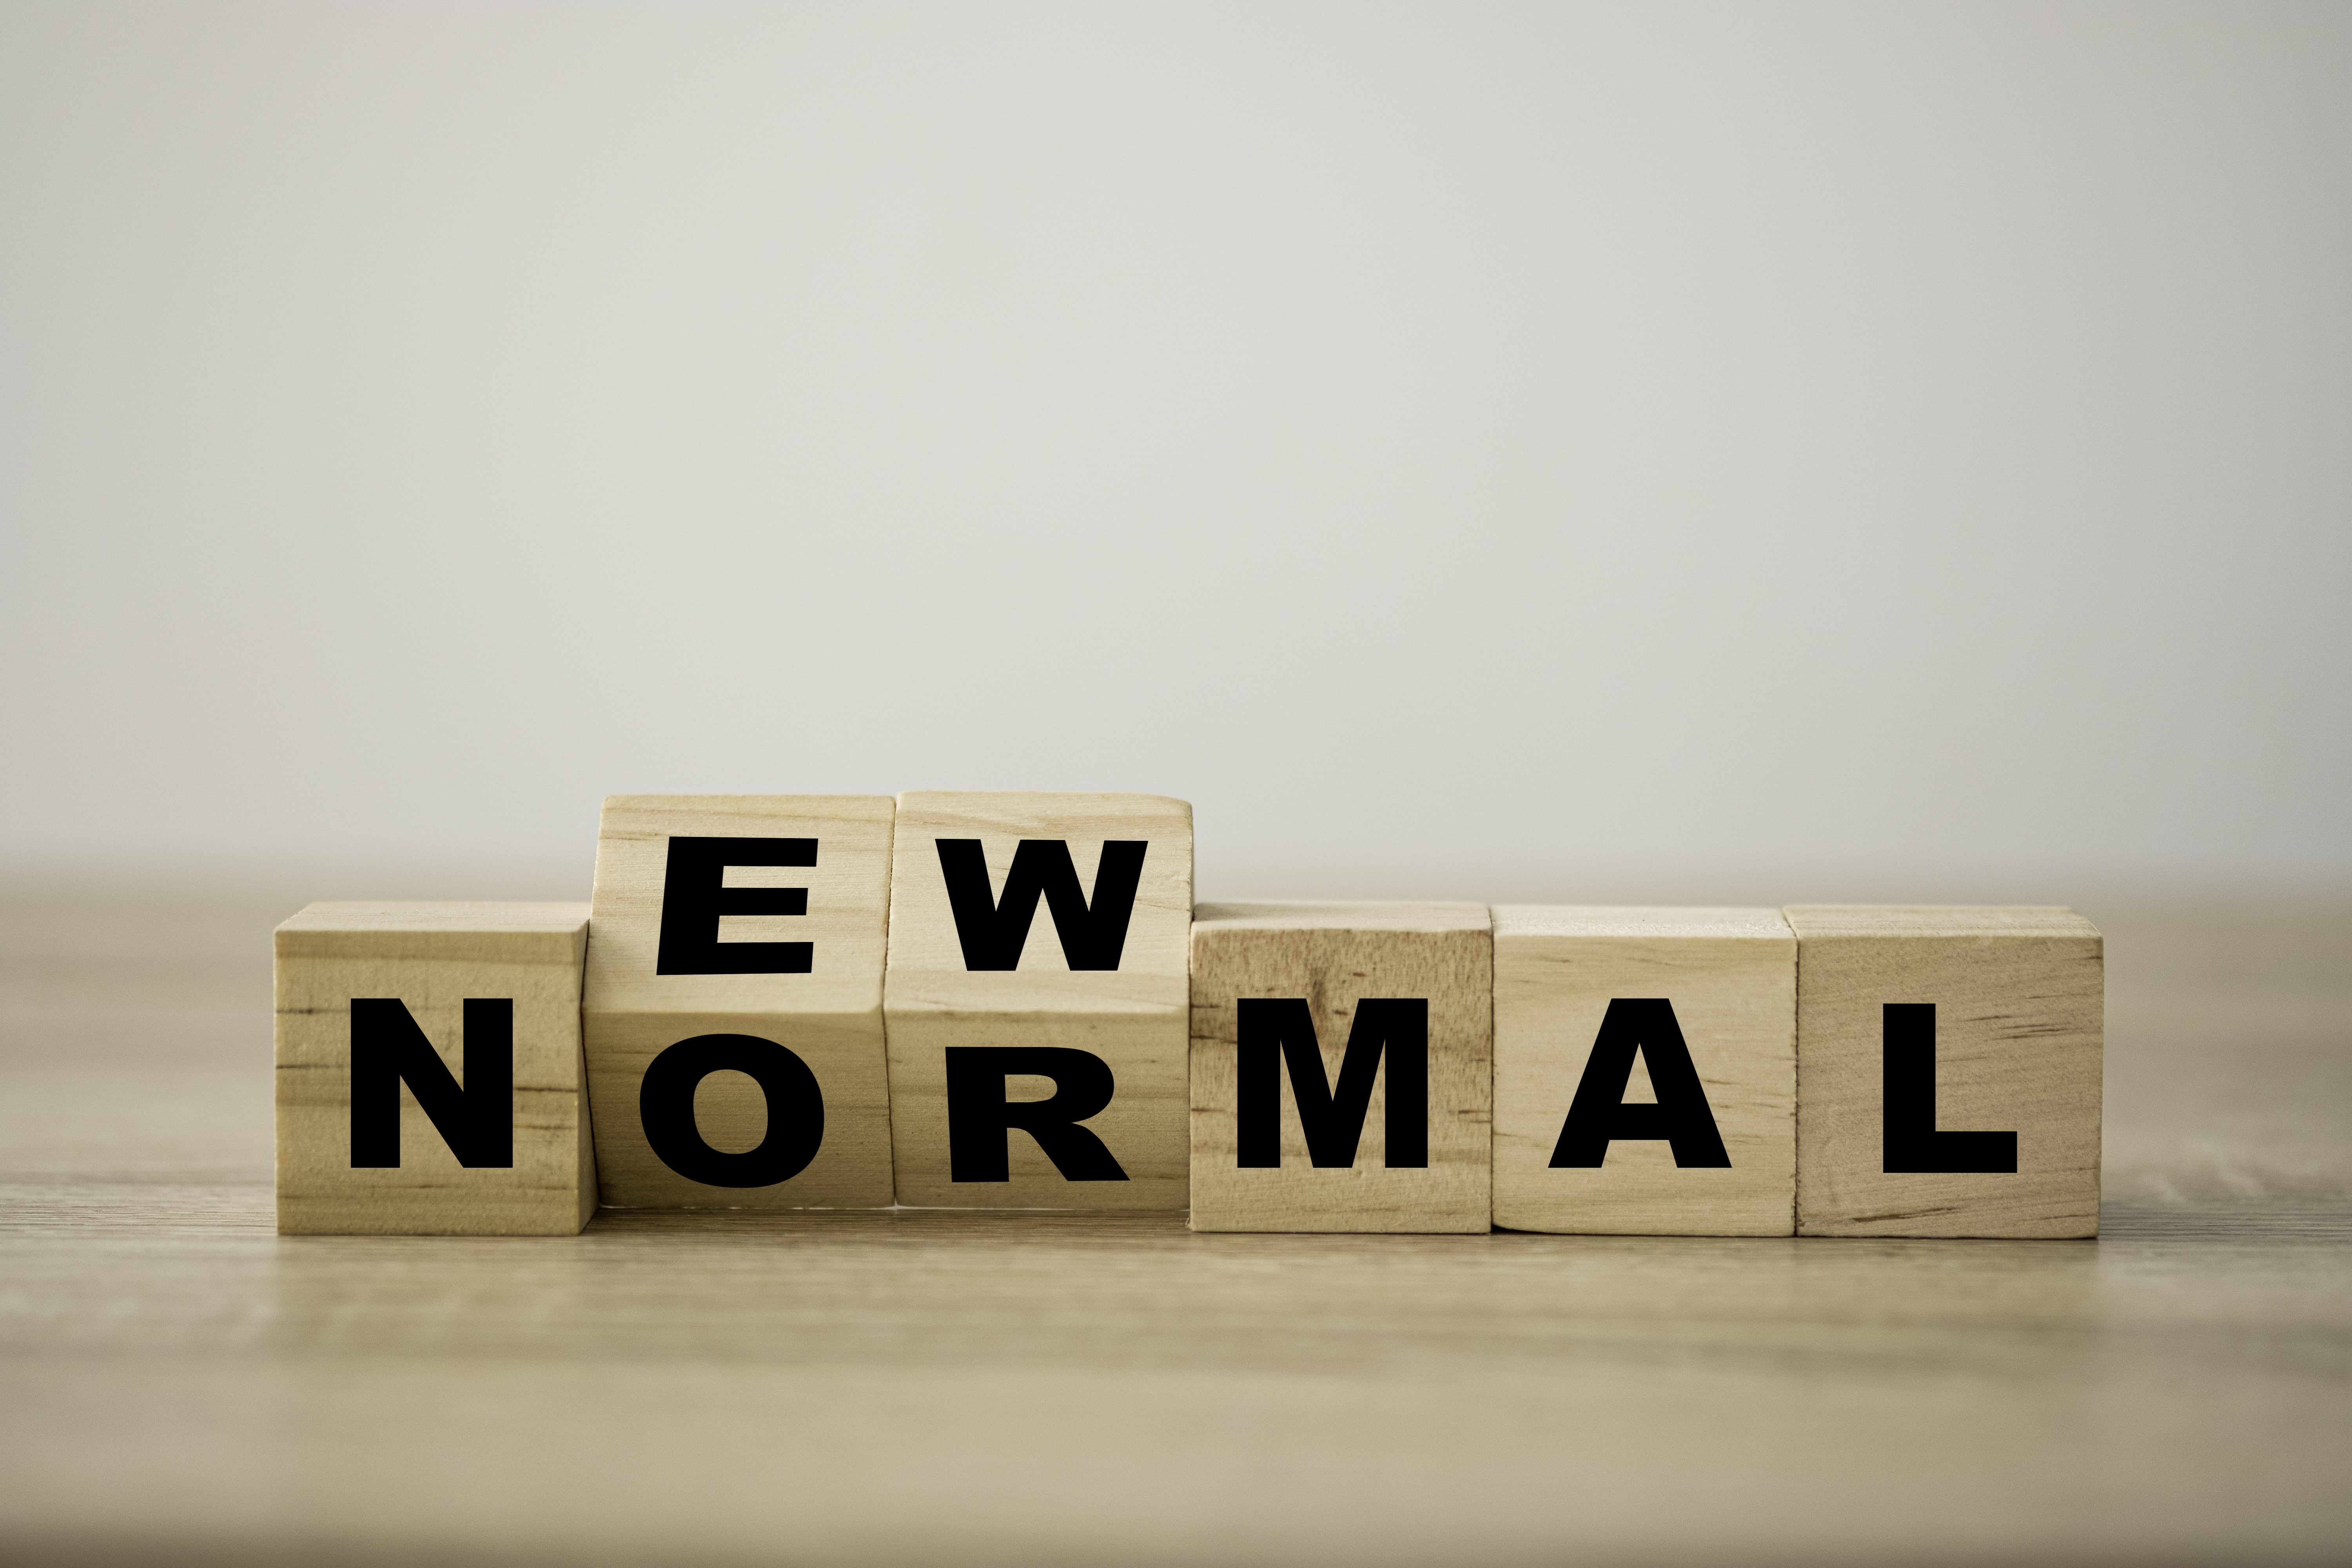 Lettered wooden cubes that spell out a wordplay on 'normal' and 'new normal'.